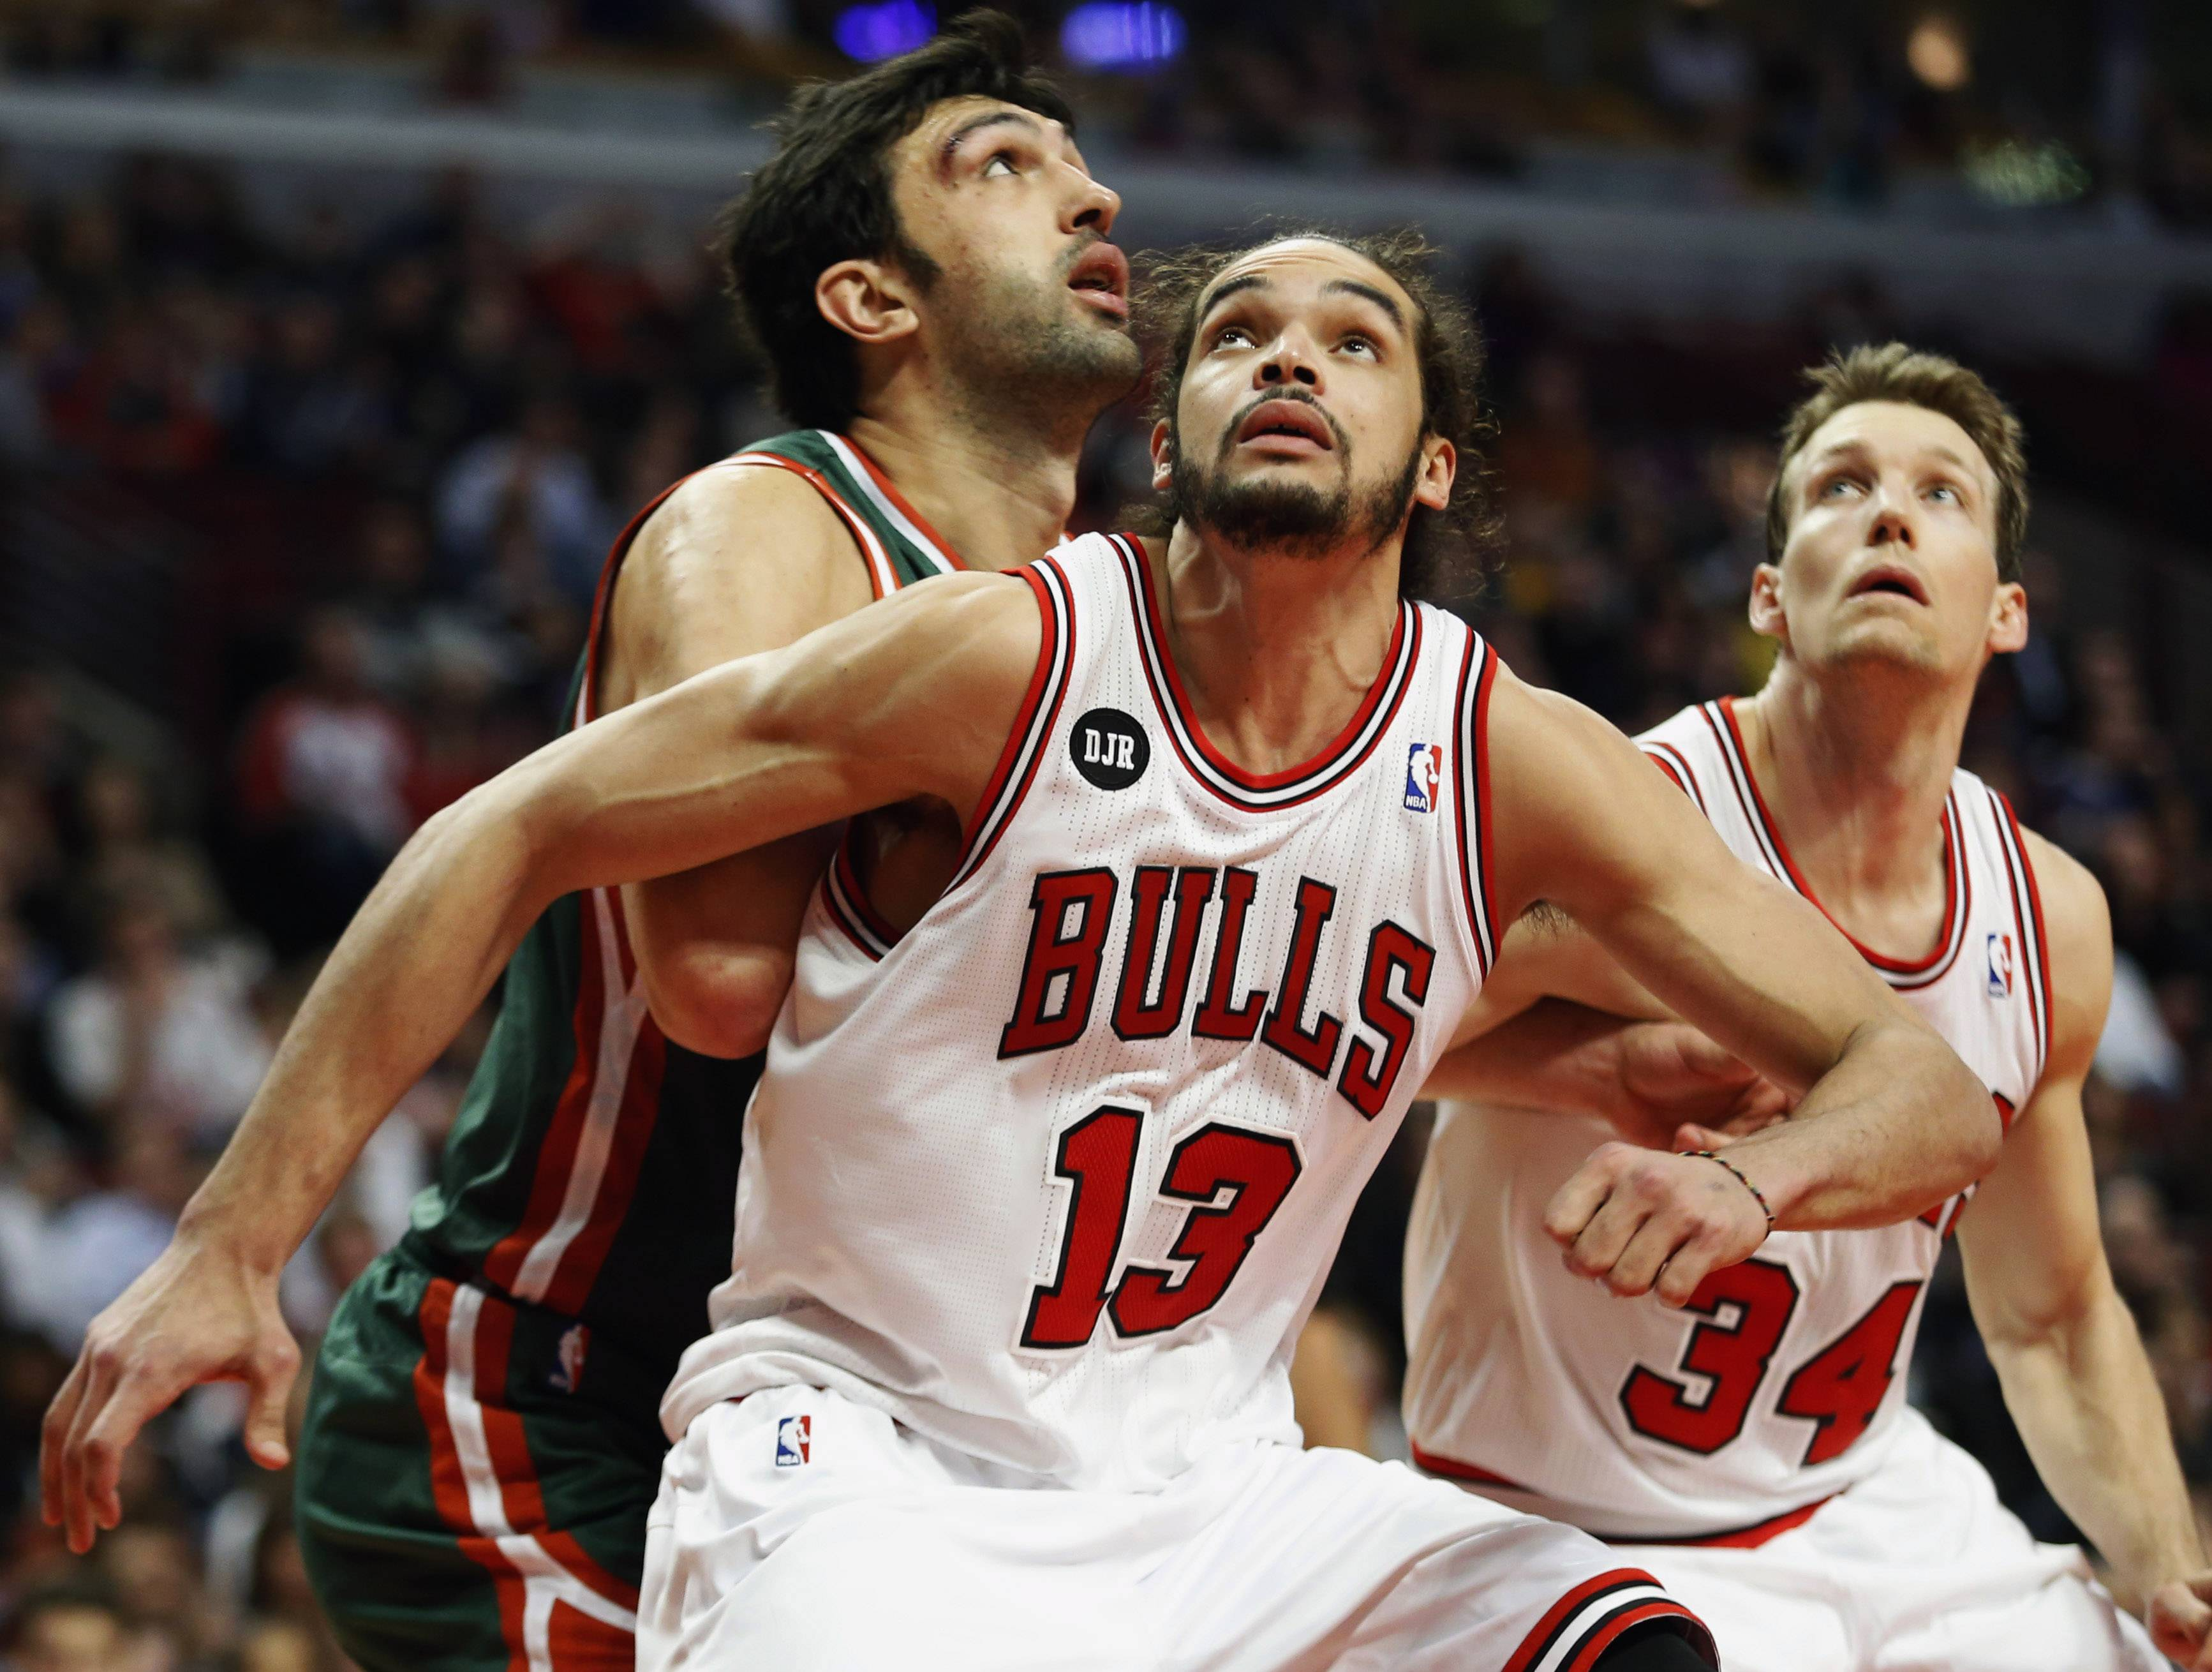 Bulls center Joakim Noah is the NBA's Defensive Player of the Year.